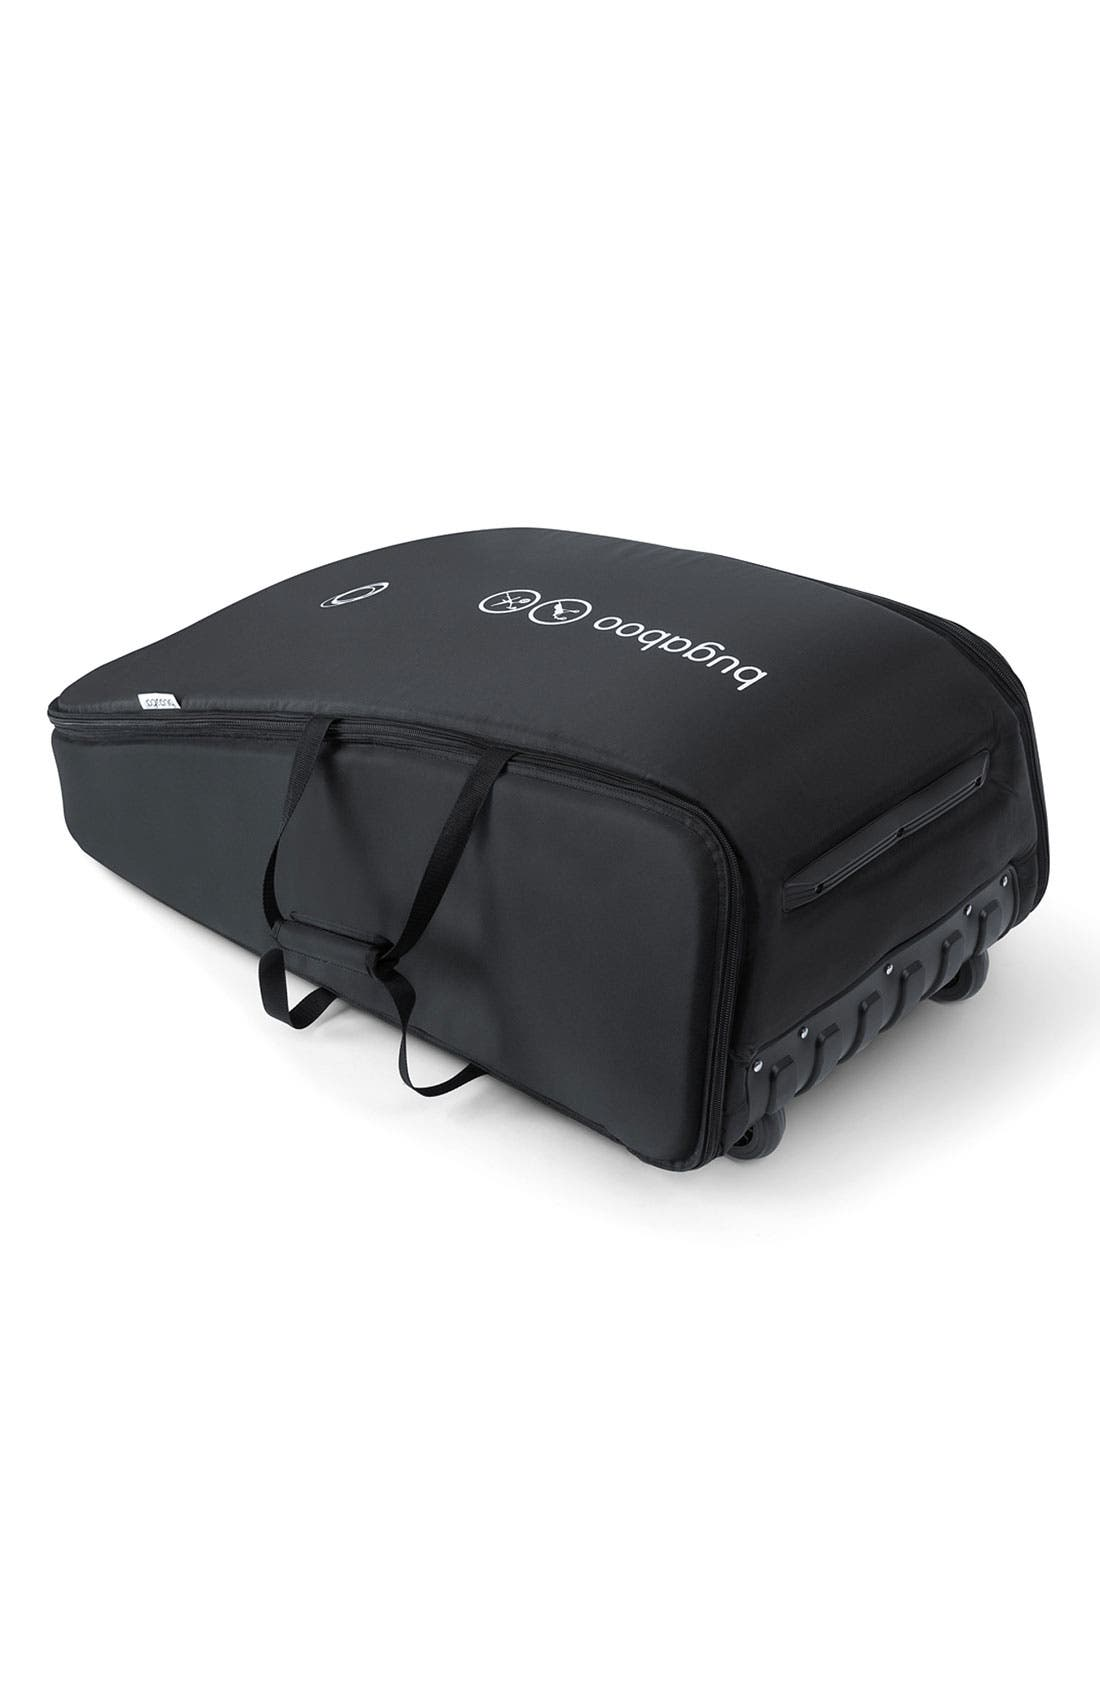 Main Image - Bugaboo Transport Bag